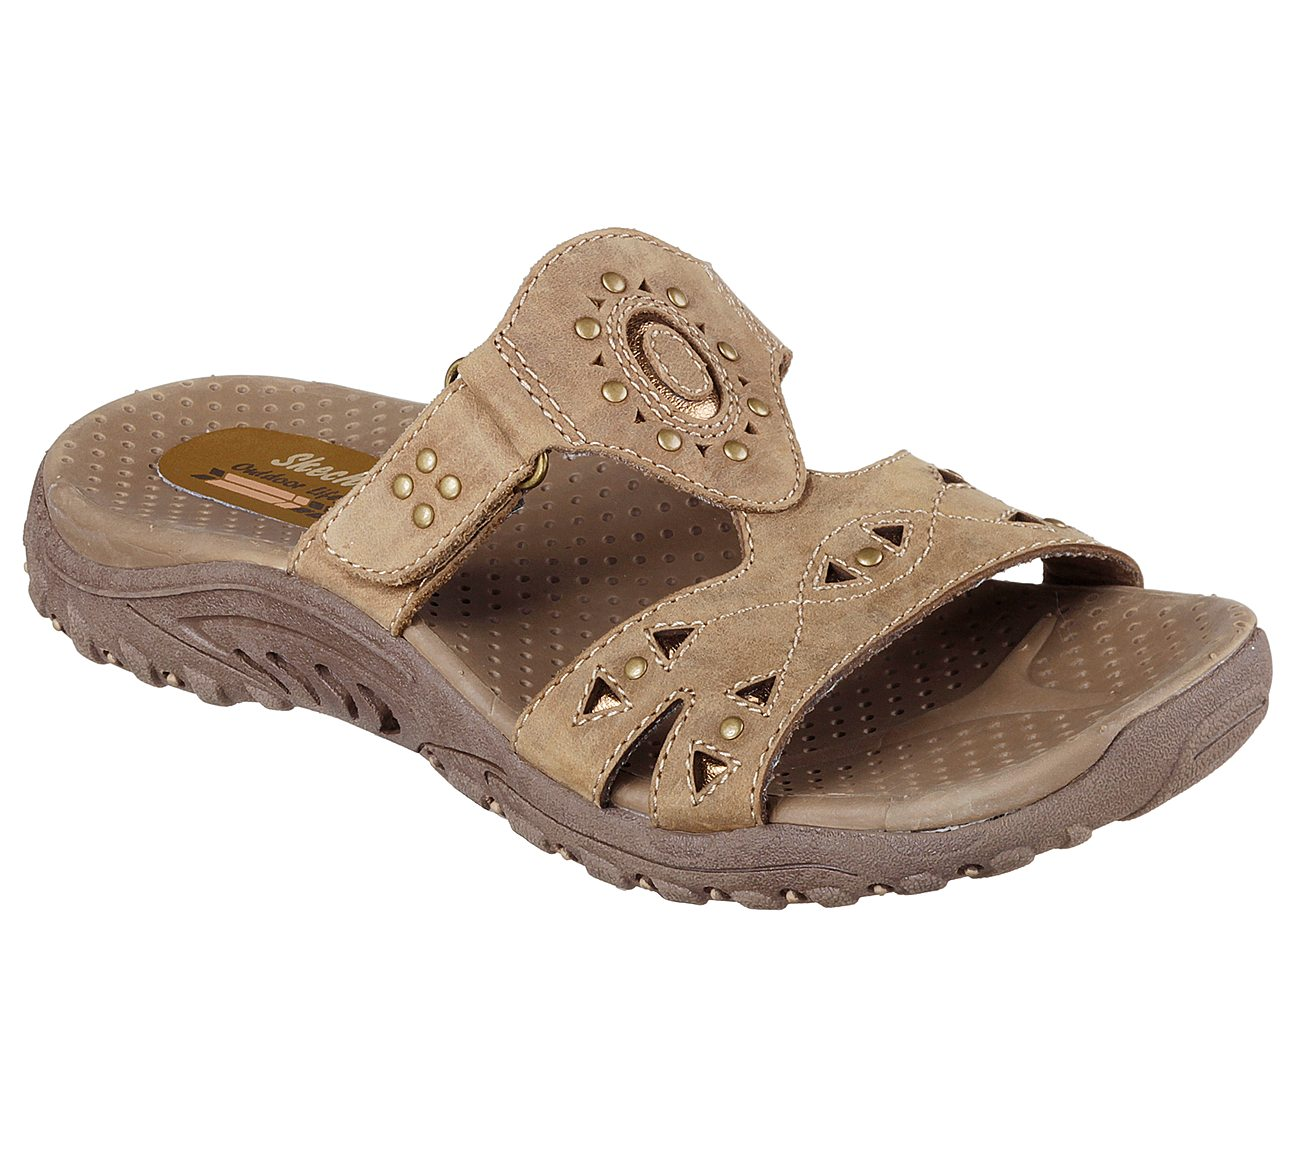 Skechers Reggae Trench Town Slide Sandal (Women's)